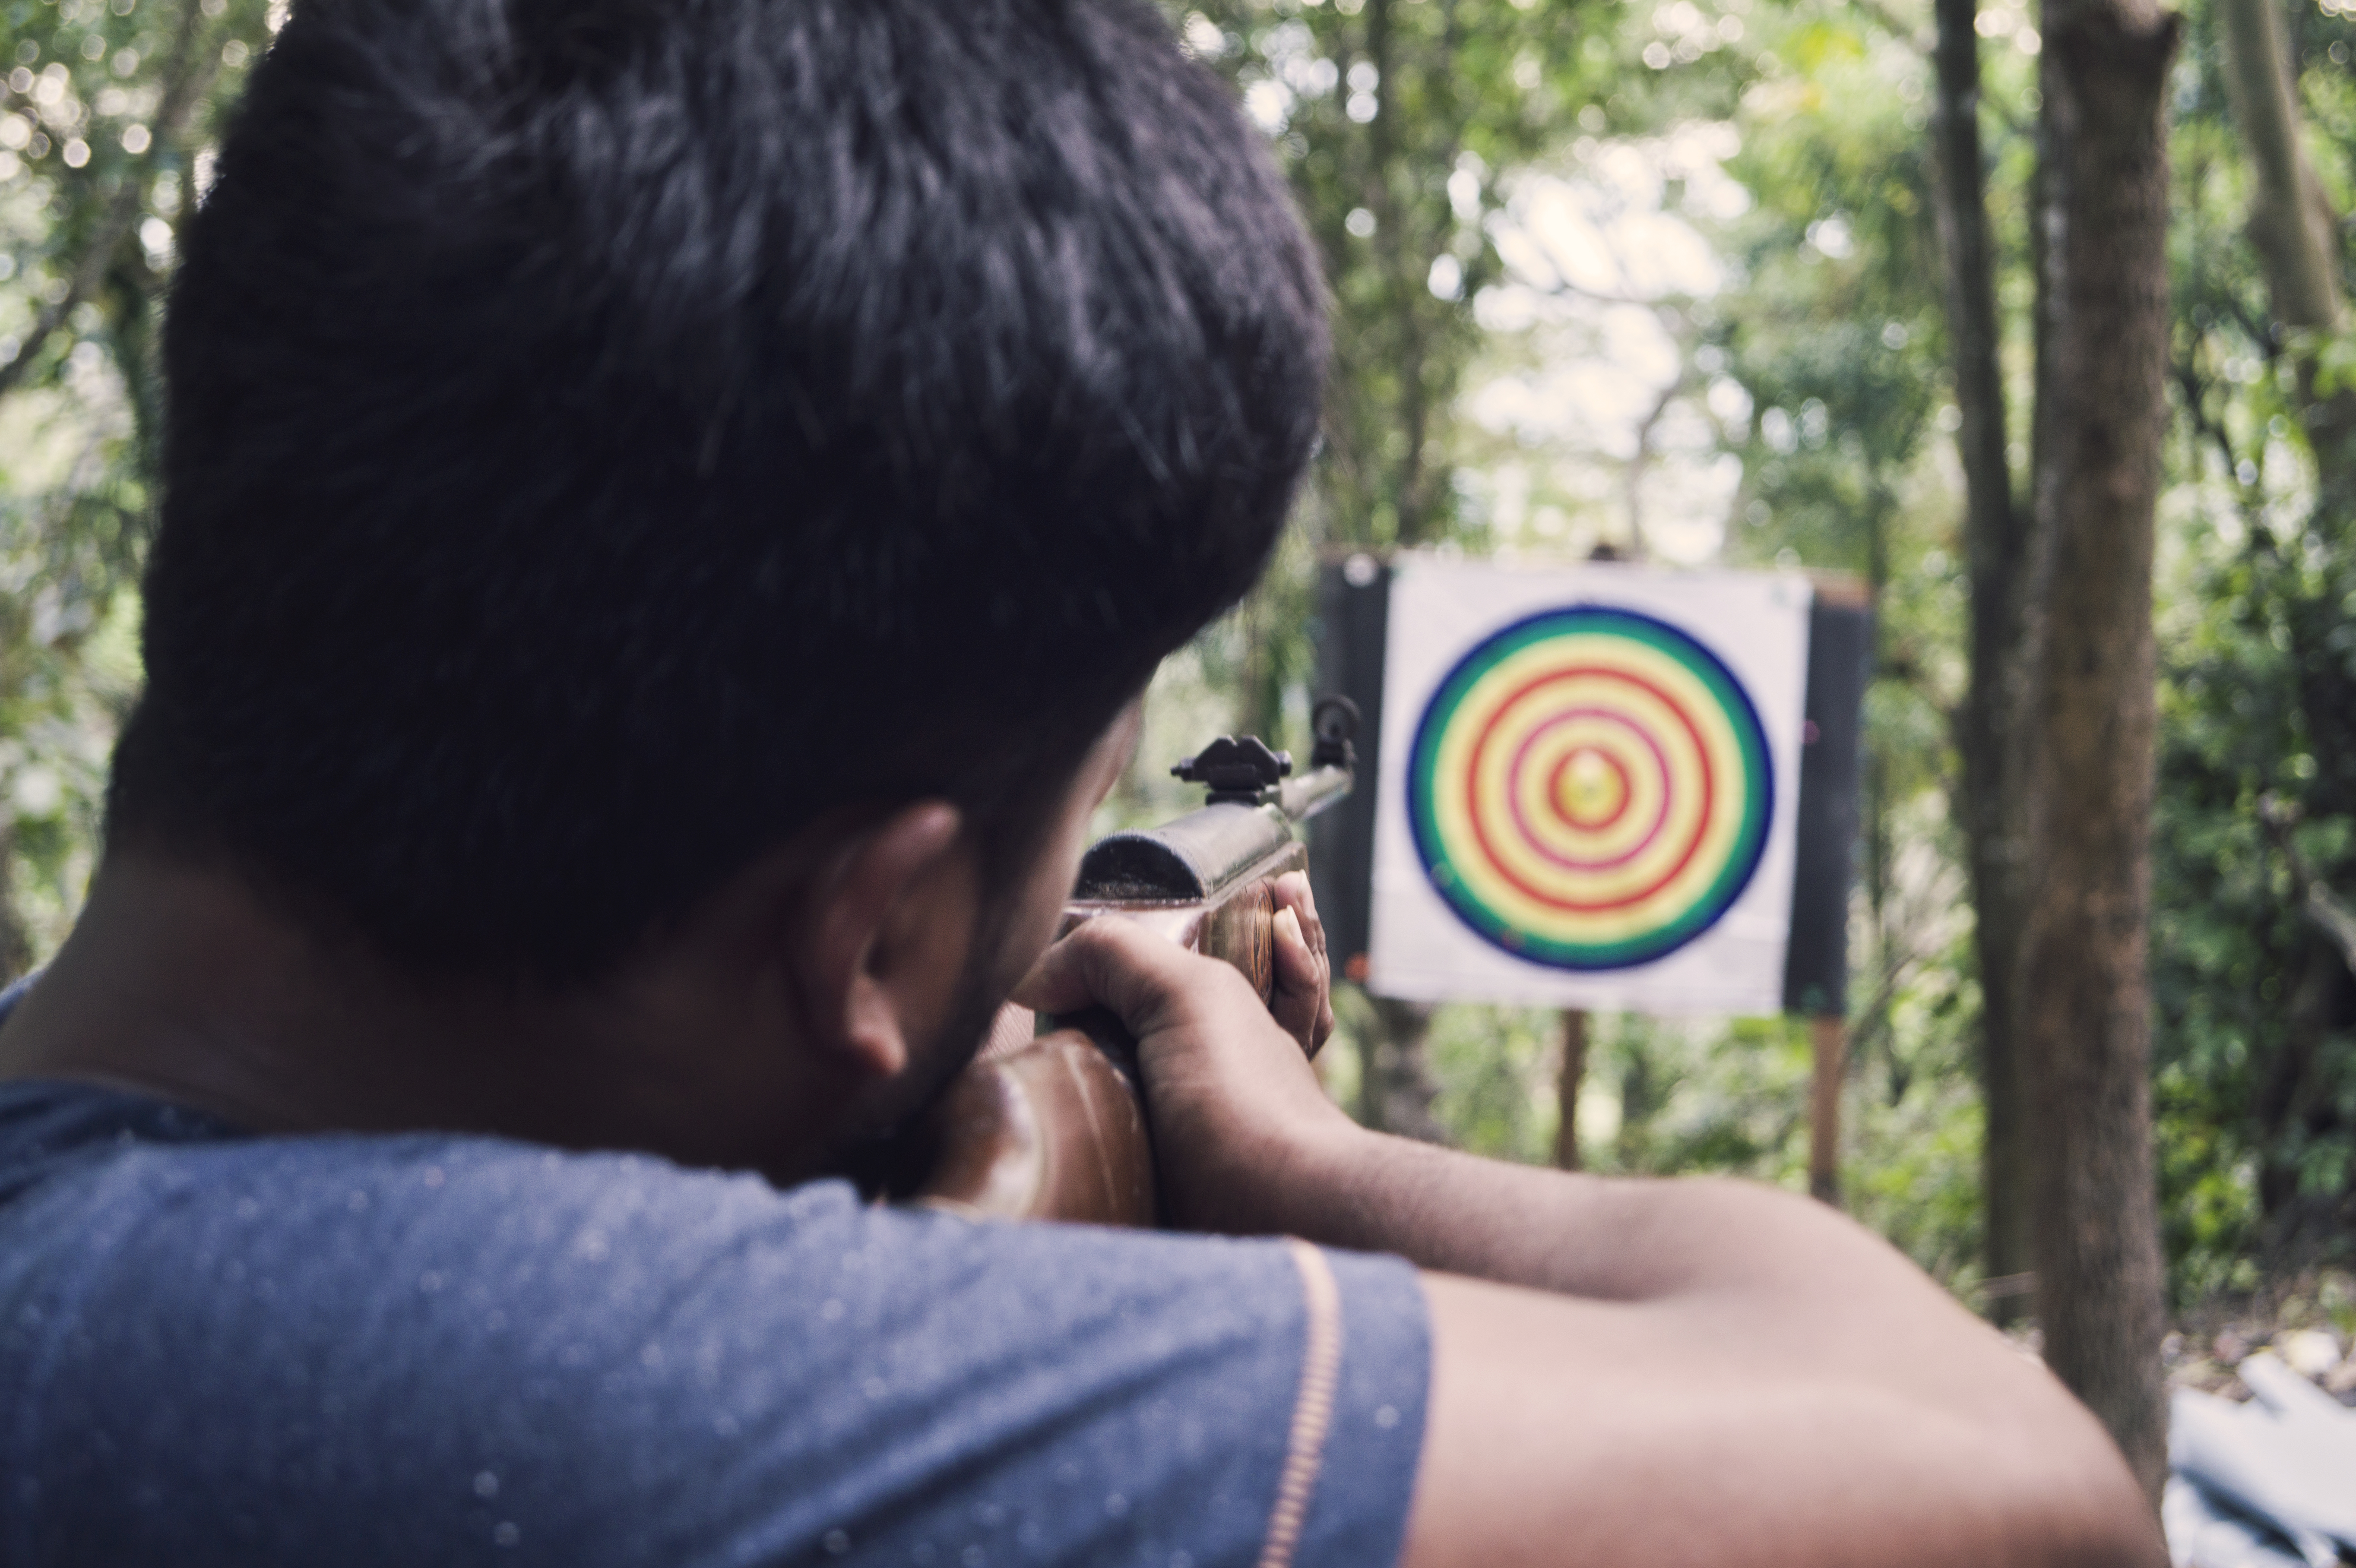 Young Man Aims For The Bull's Eye